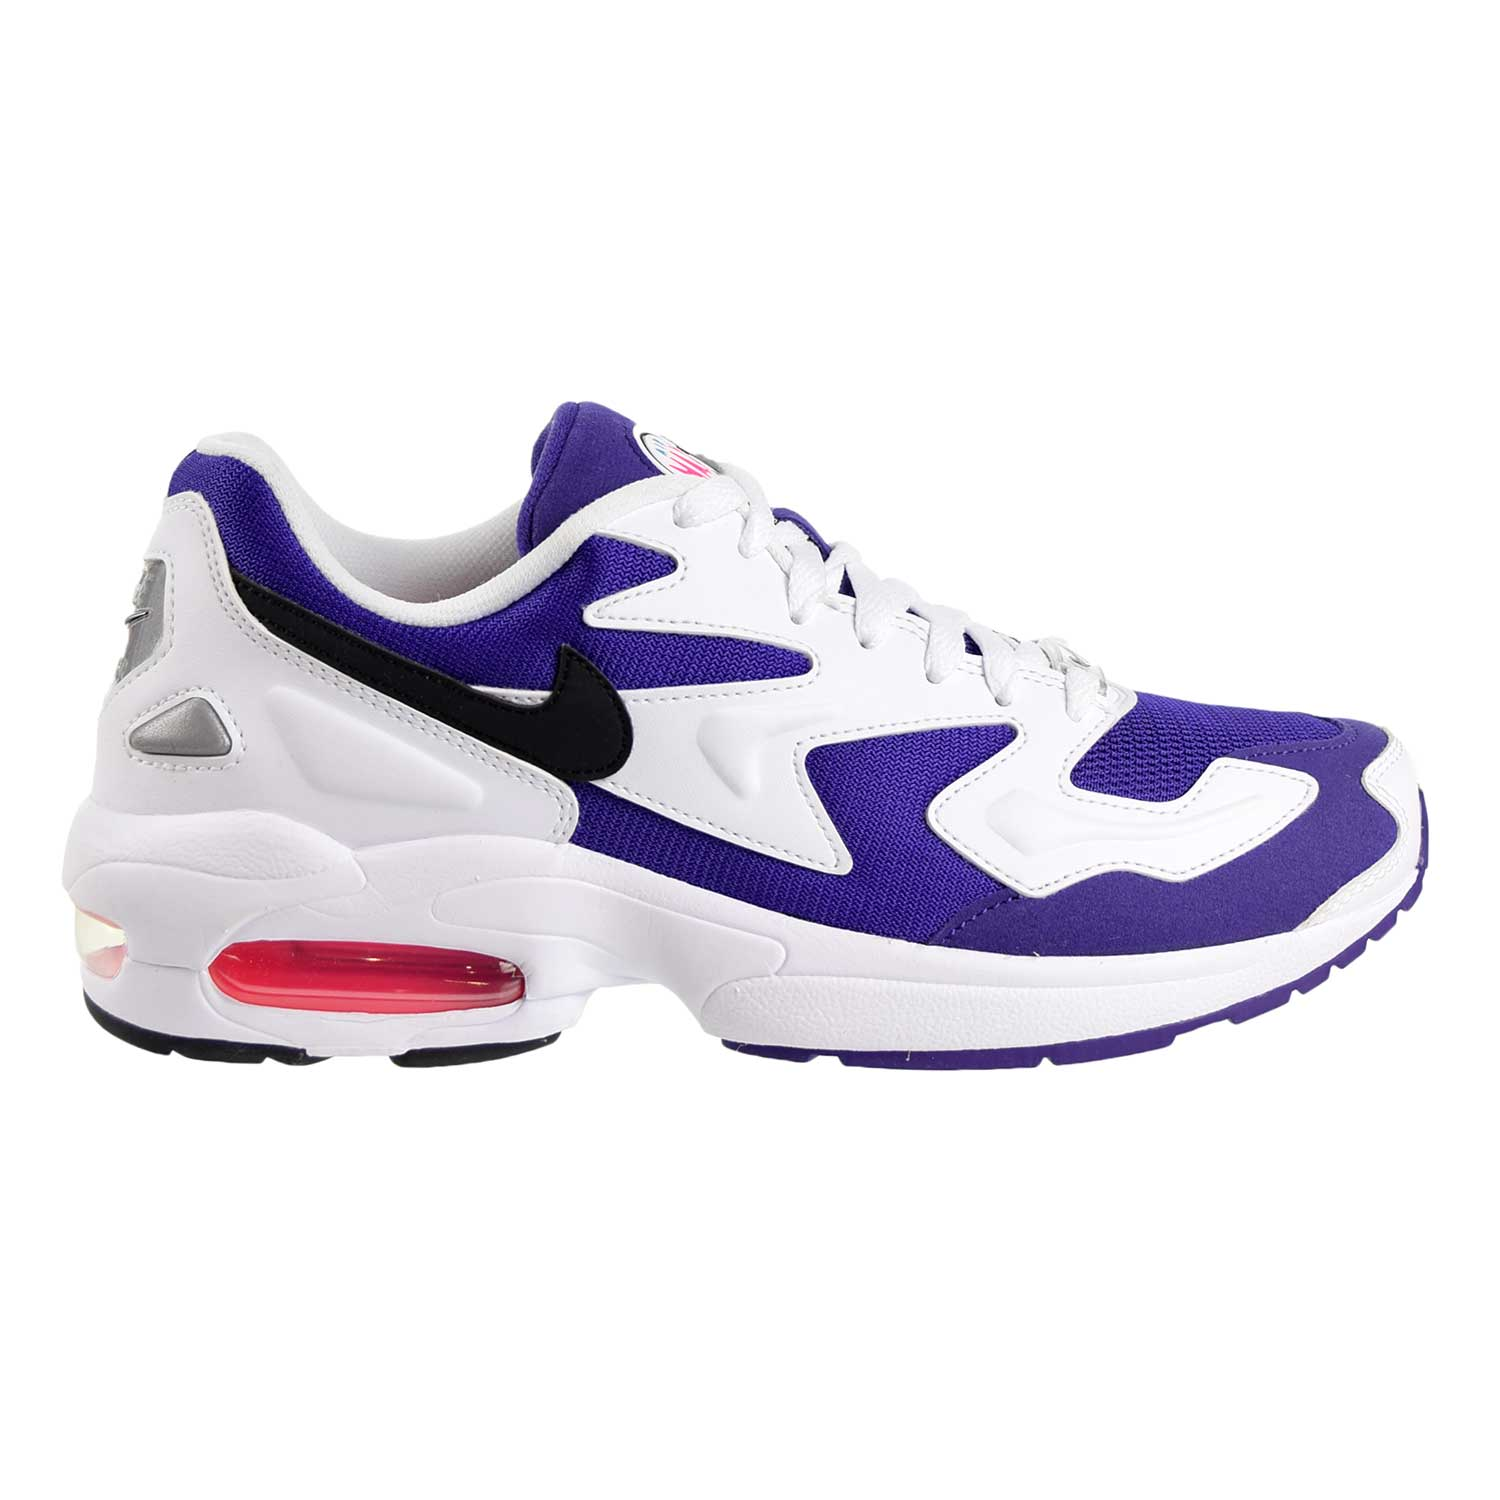 Details about Nike Air Max 2 Light Mens Shoes White-Black-Court Purple  AO1741-103